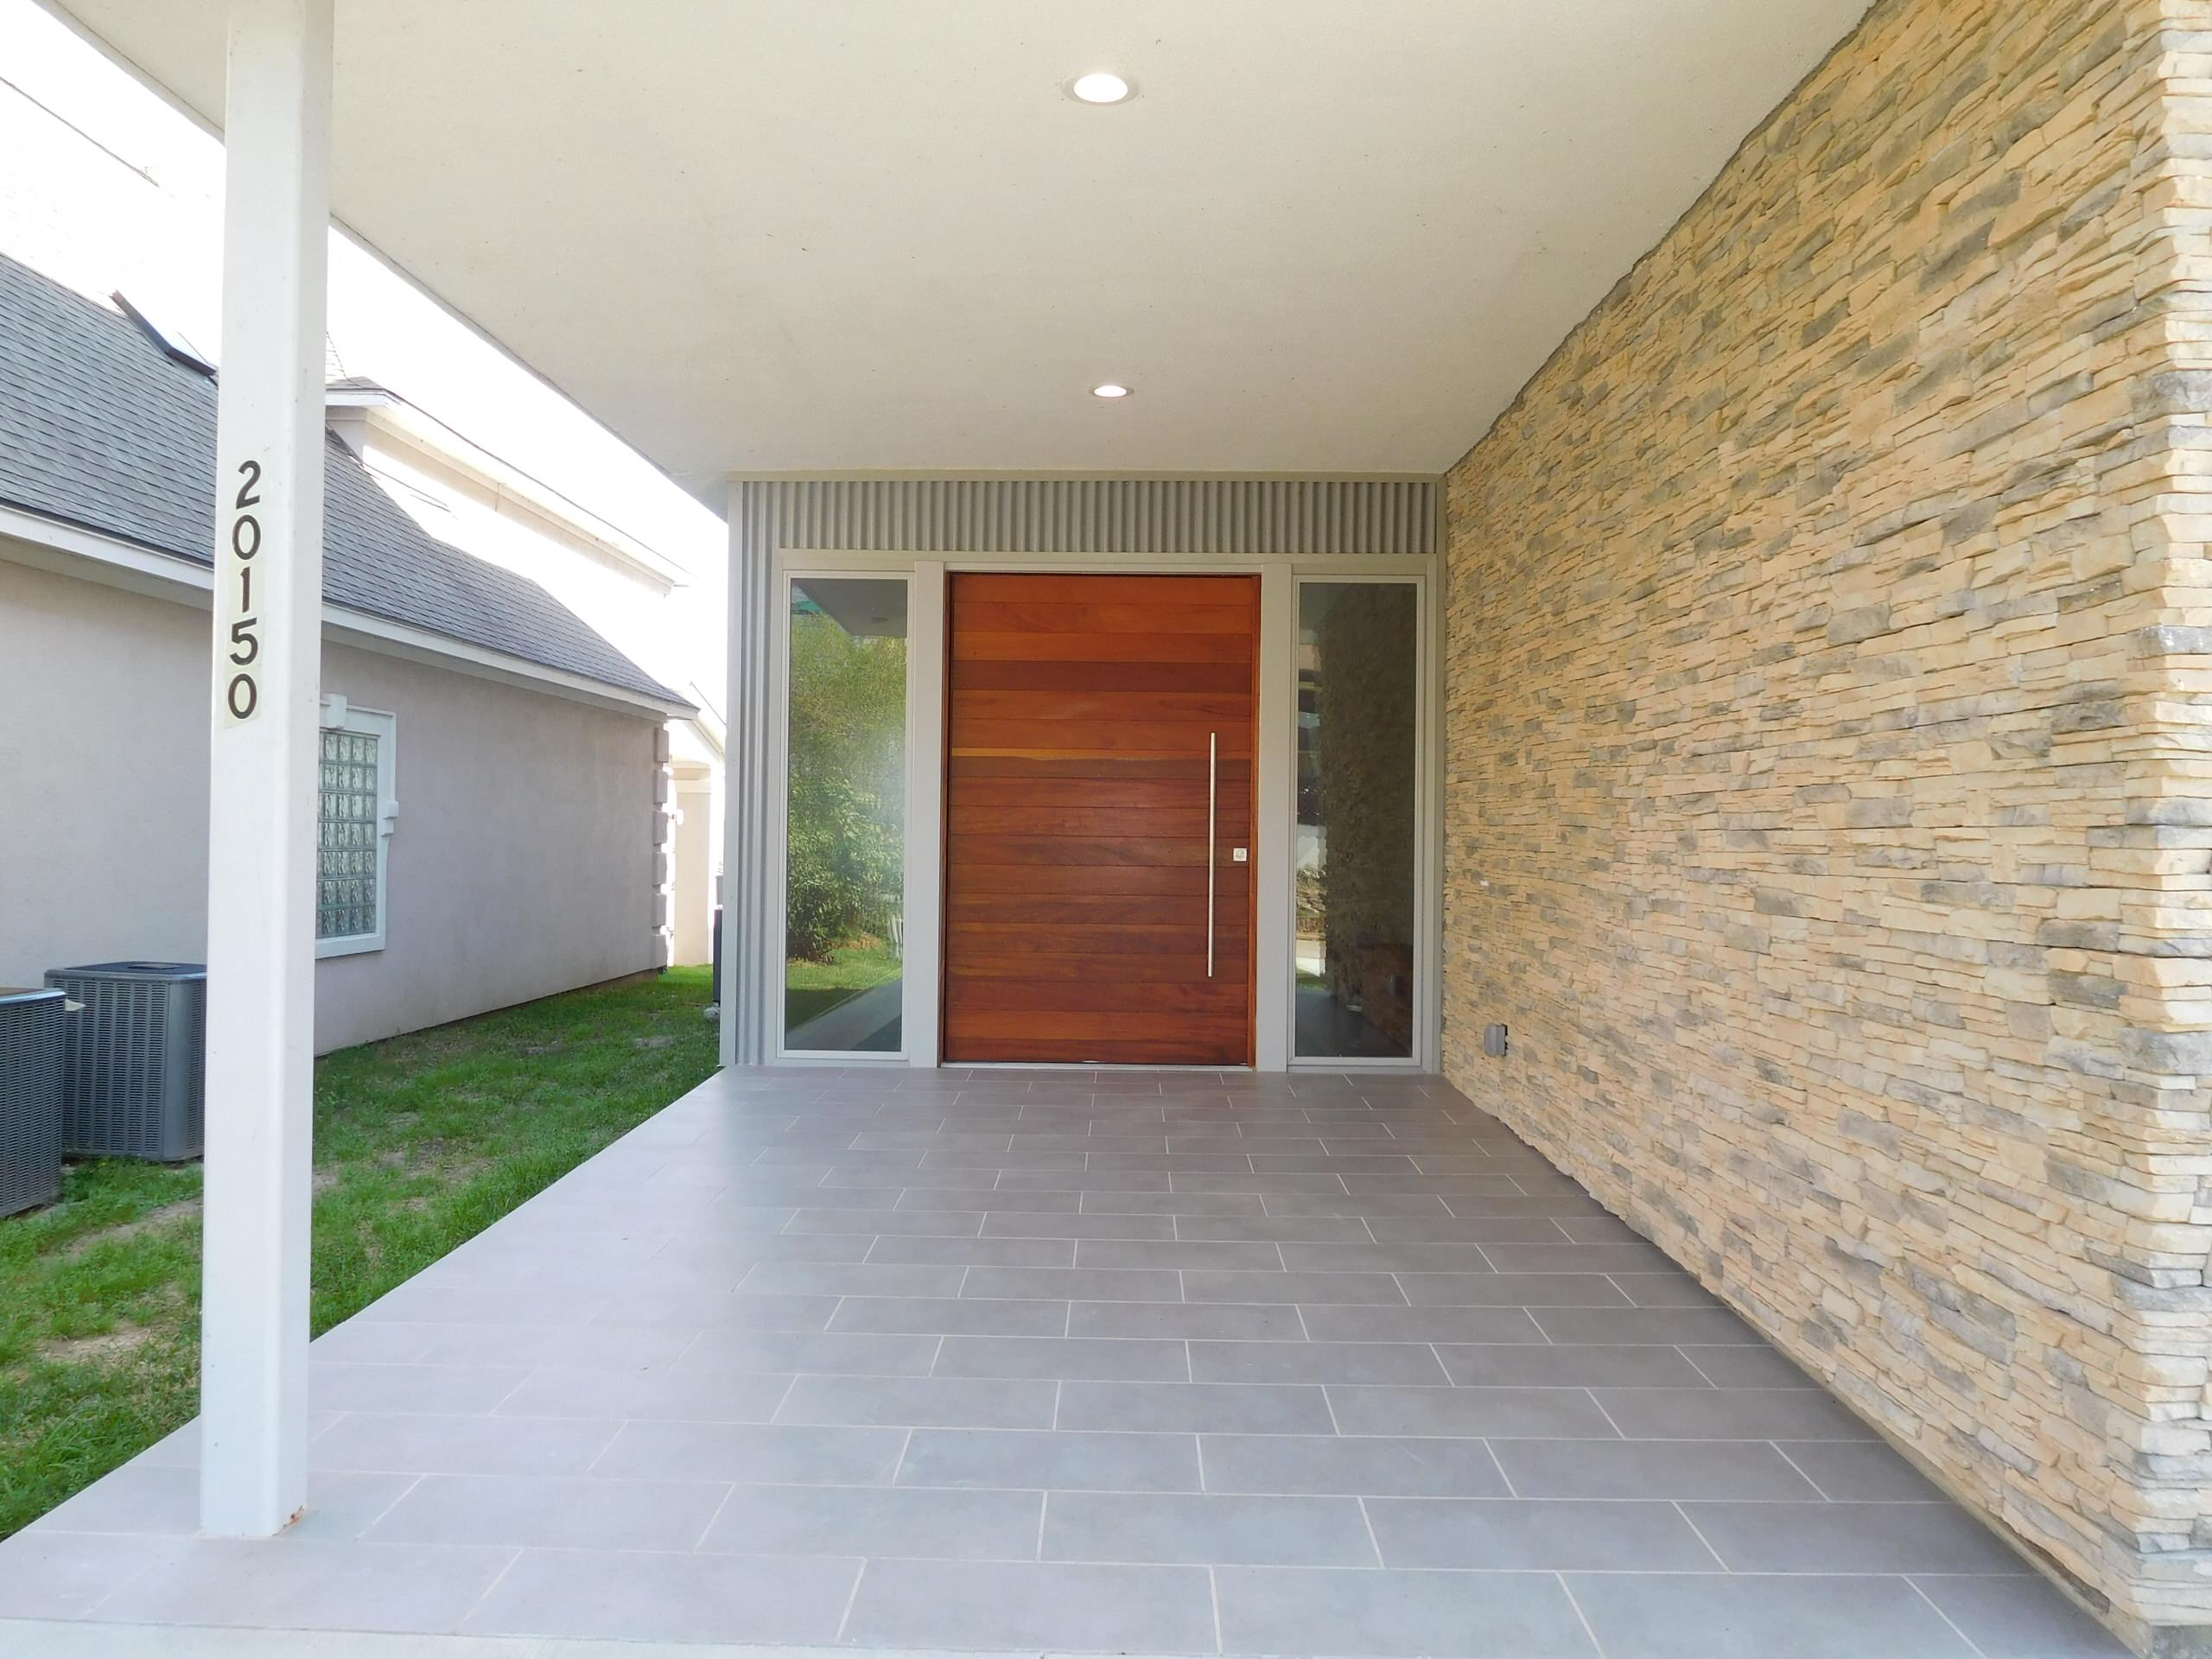 Covered entry with large pivot door